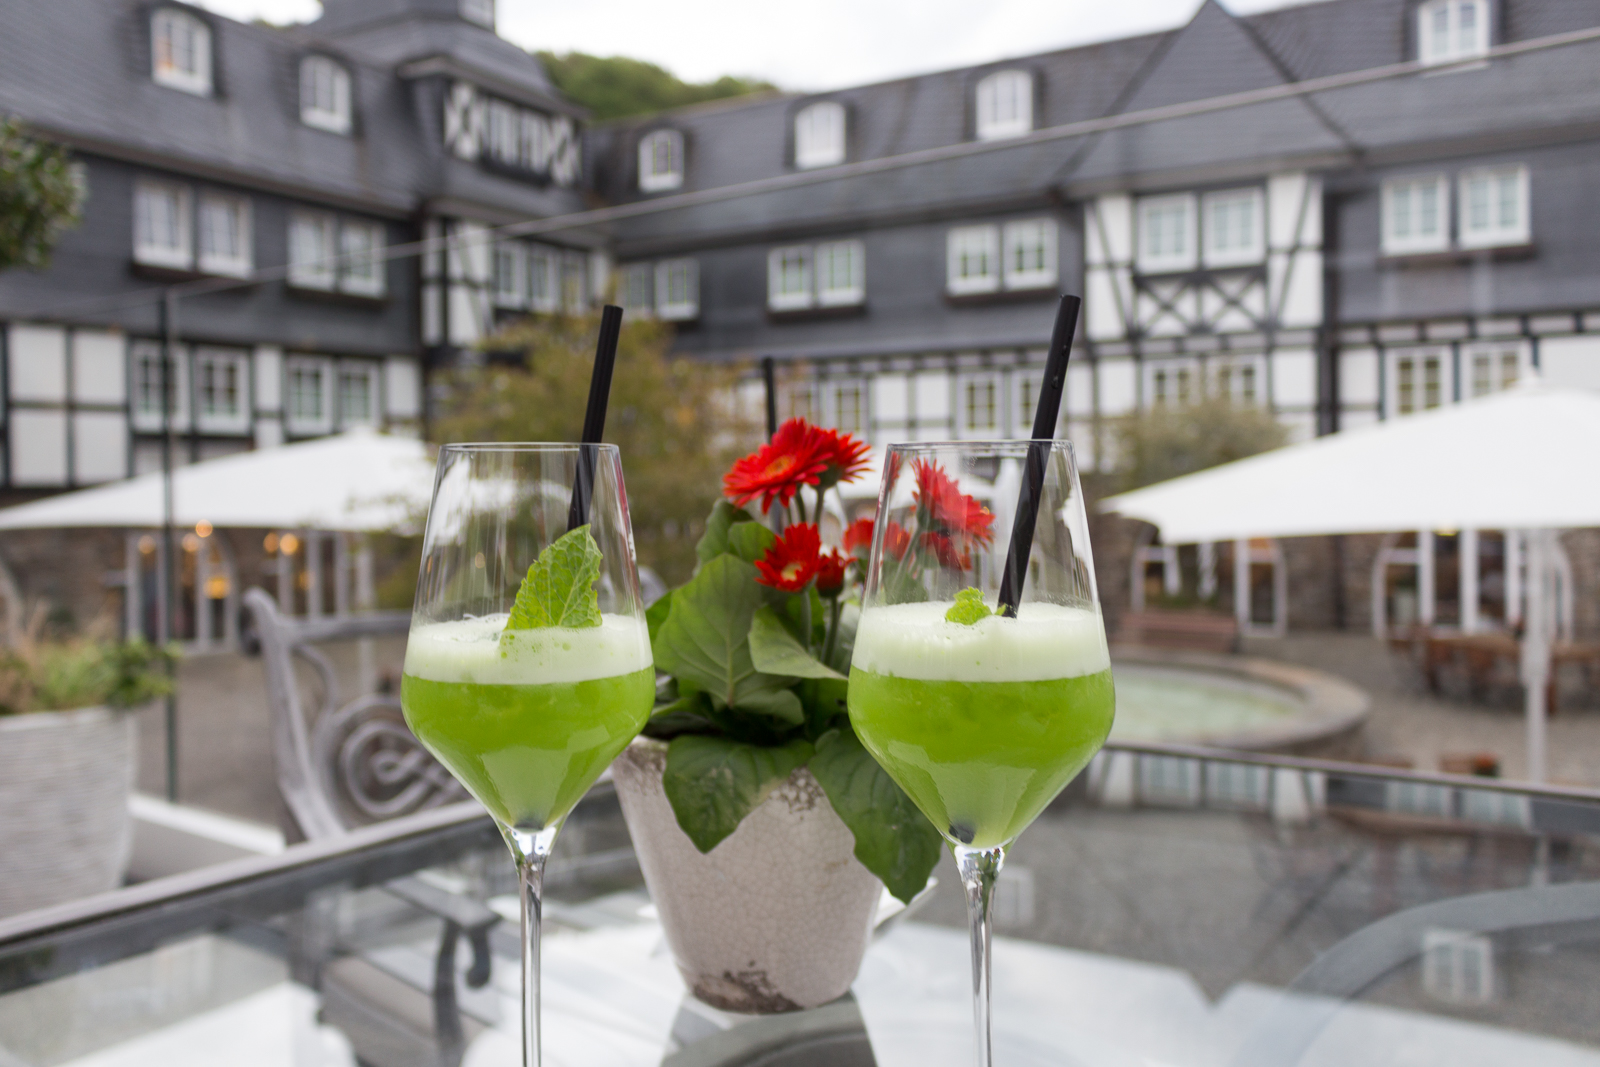 Sauerland Schmallenberg Hotel Deimann